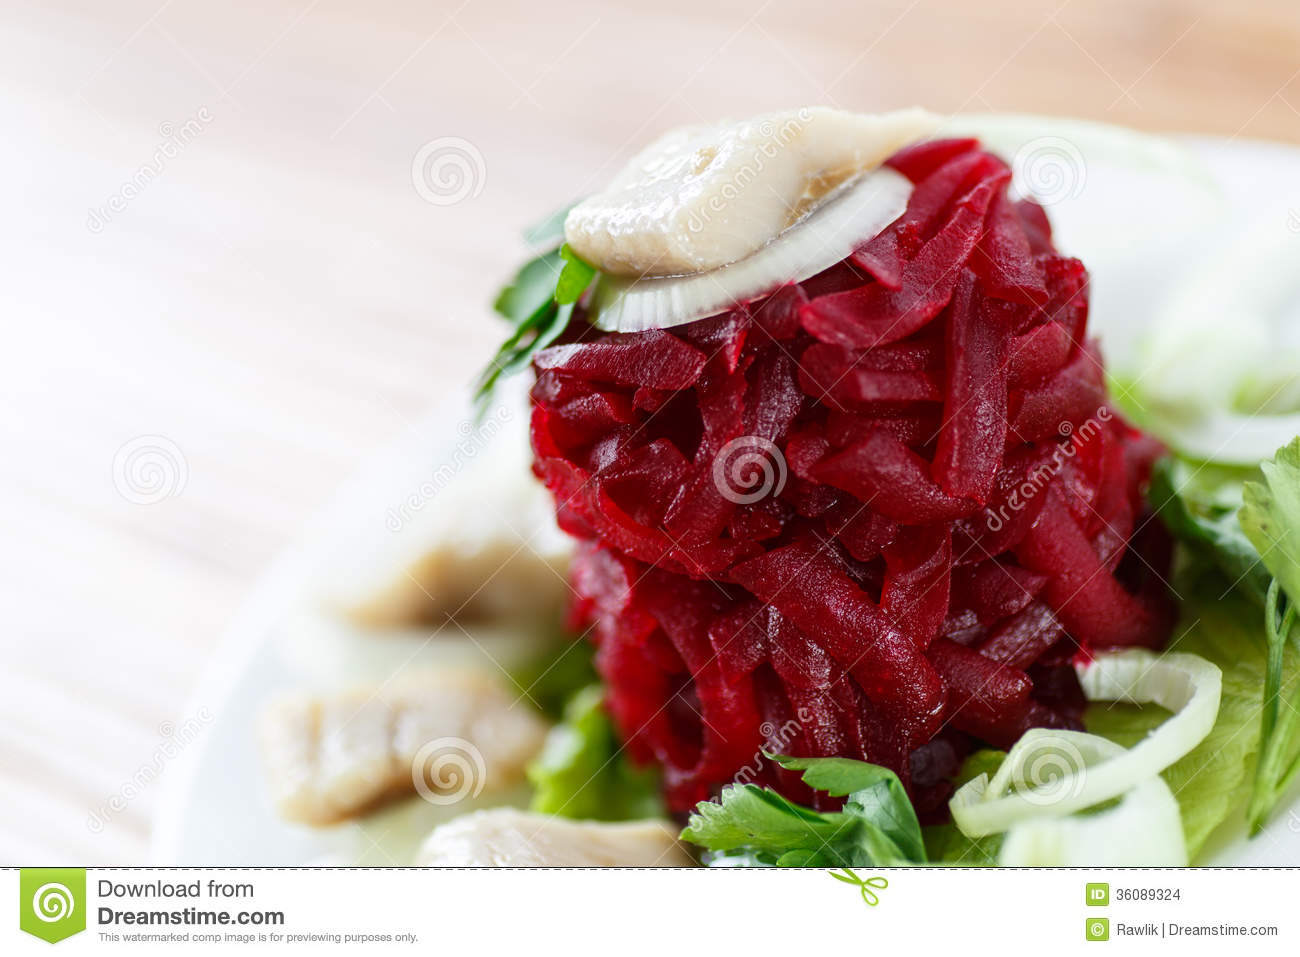 Salad with boiled beet and herring with lettuce leaves.